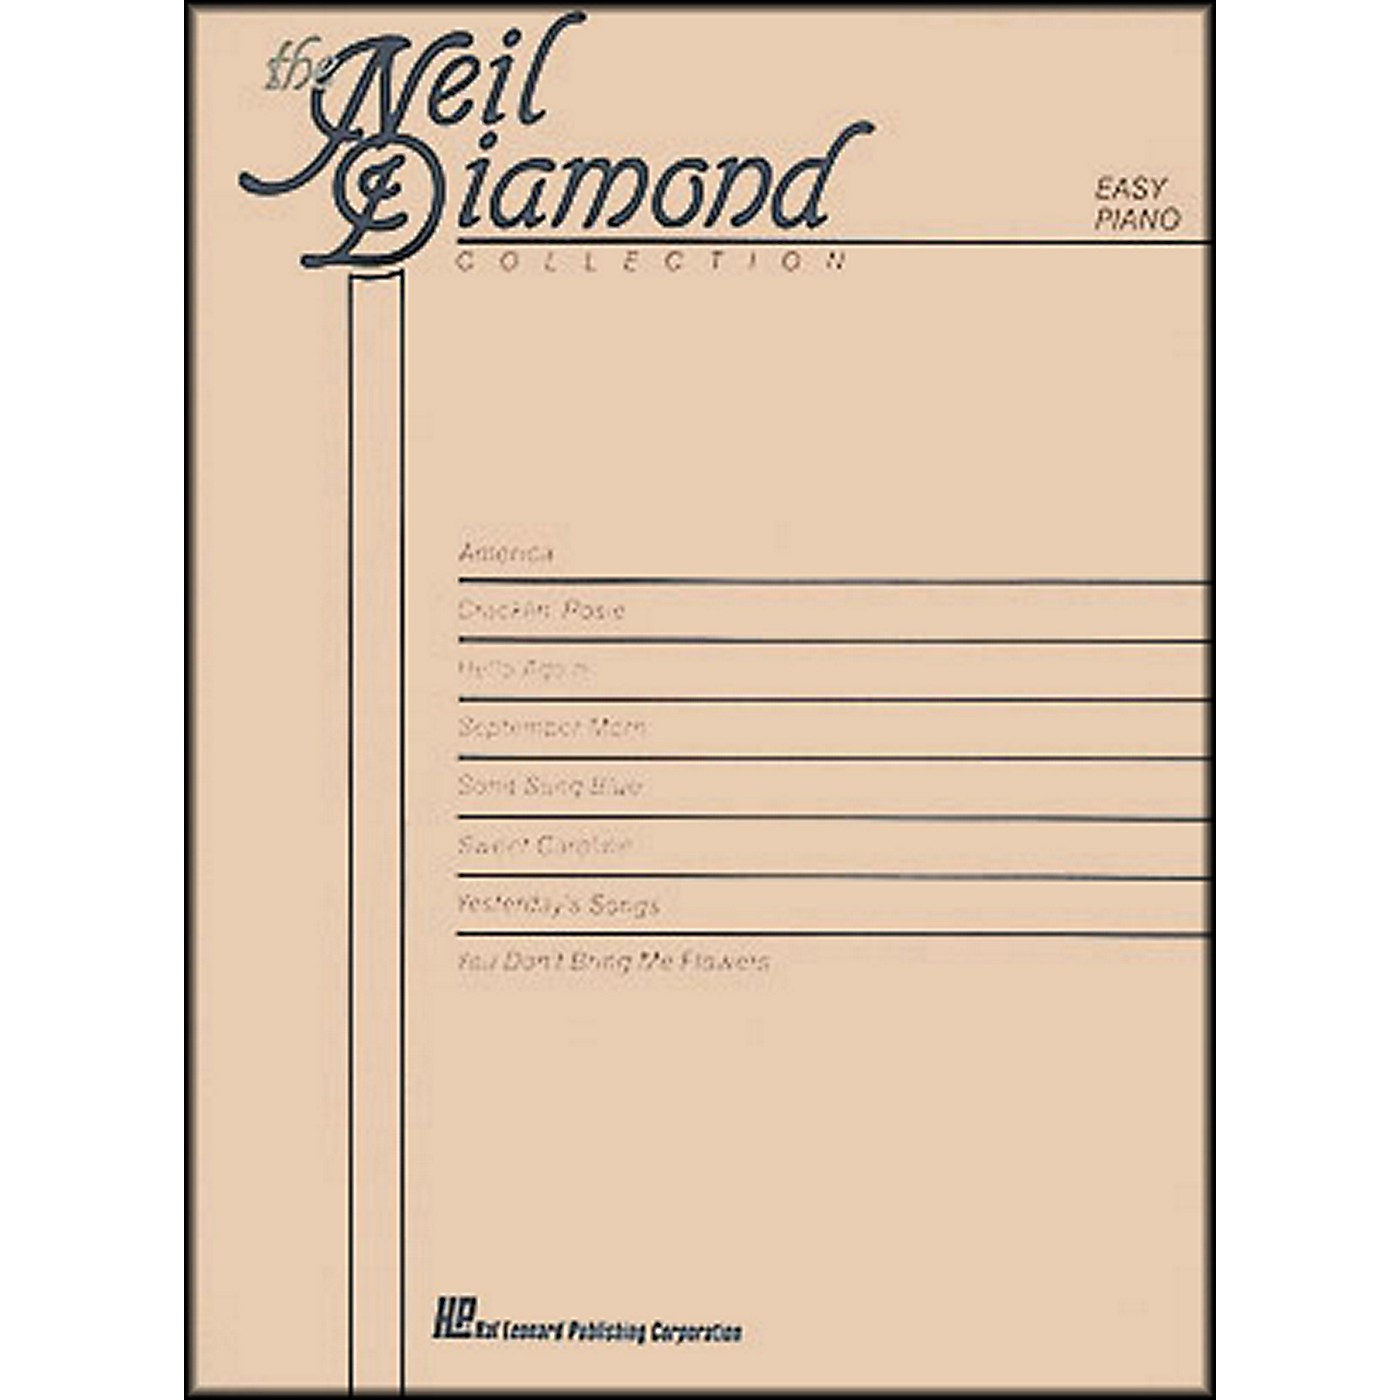 Hal Leonard The Neil Diamond Collection arranged for piano, vocal, and guitar (P/V/G) thumbnail